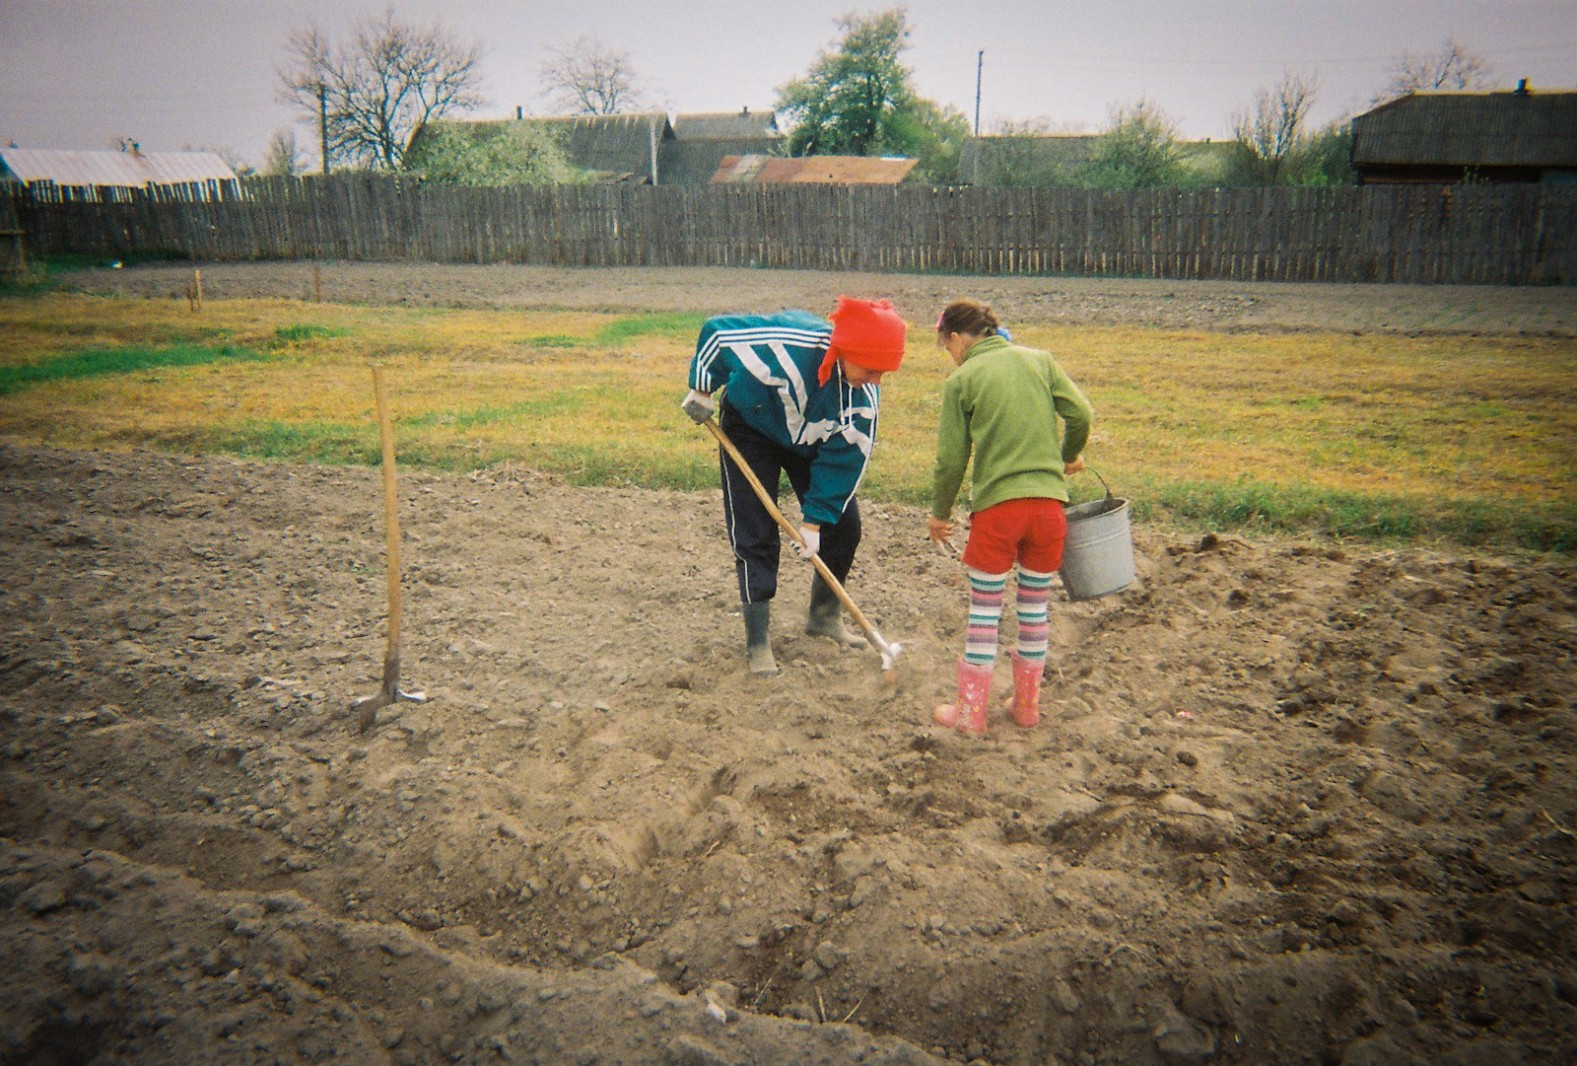 A mother and her daighter plant potatoes during April, the same month that Chernobyl polluted this landscape almost thirty years earlier